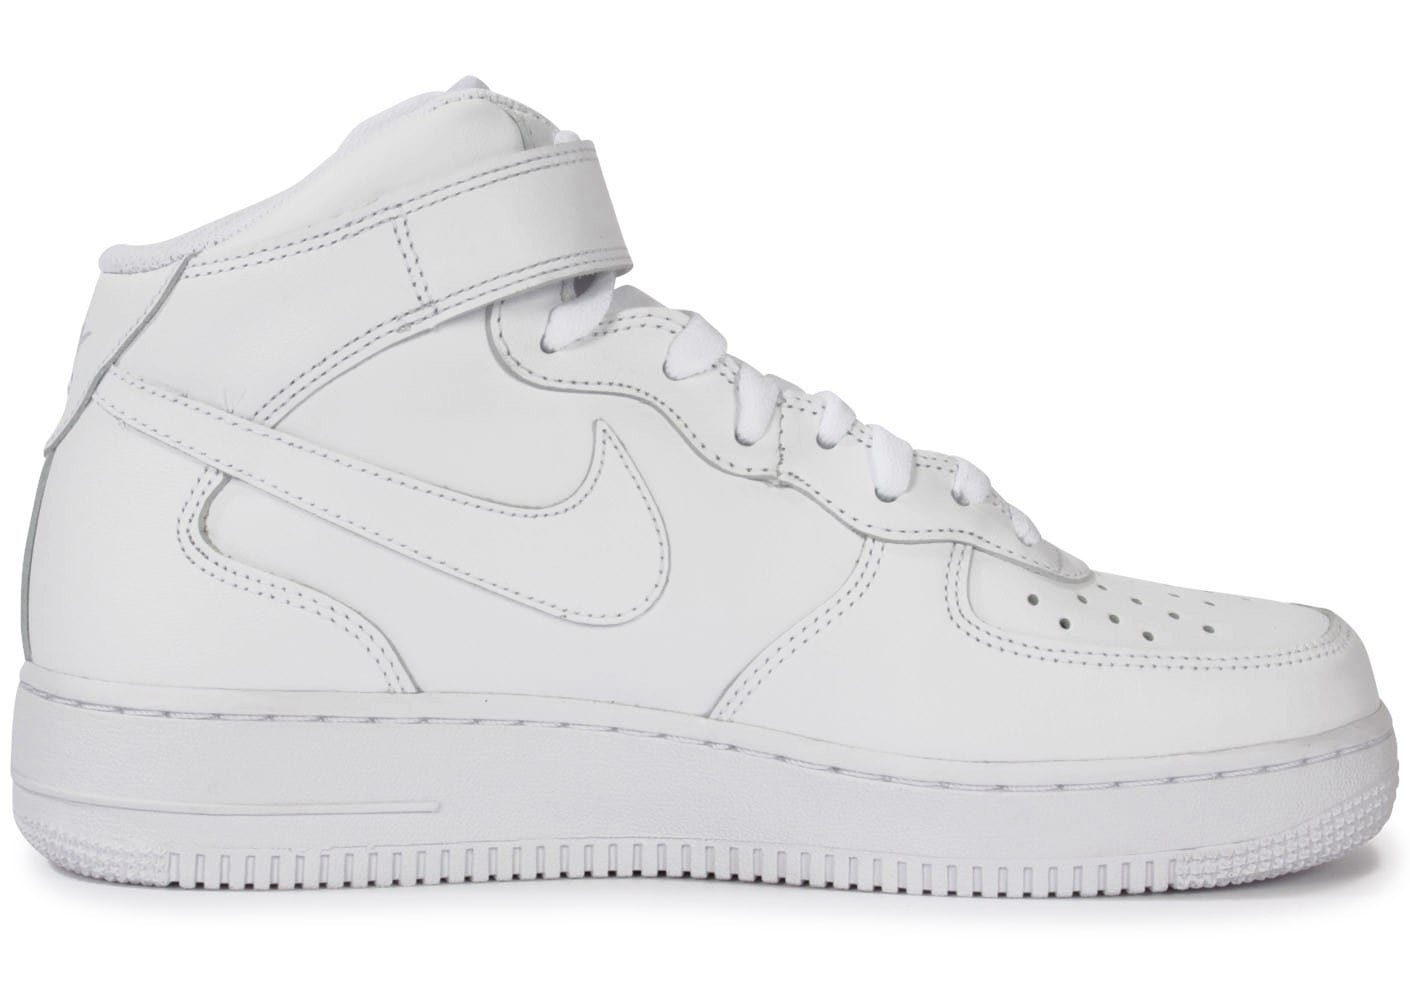 nike air force 1 mid 07 blanche chaussures homme chausport. Black Bedroom Furniture Sets. Home Design Ideas